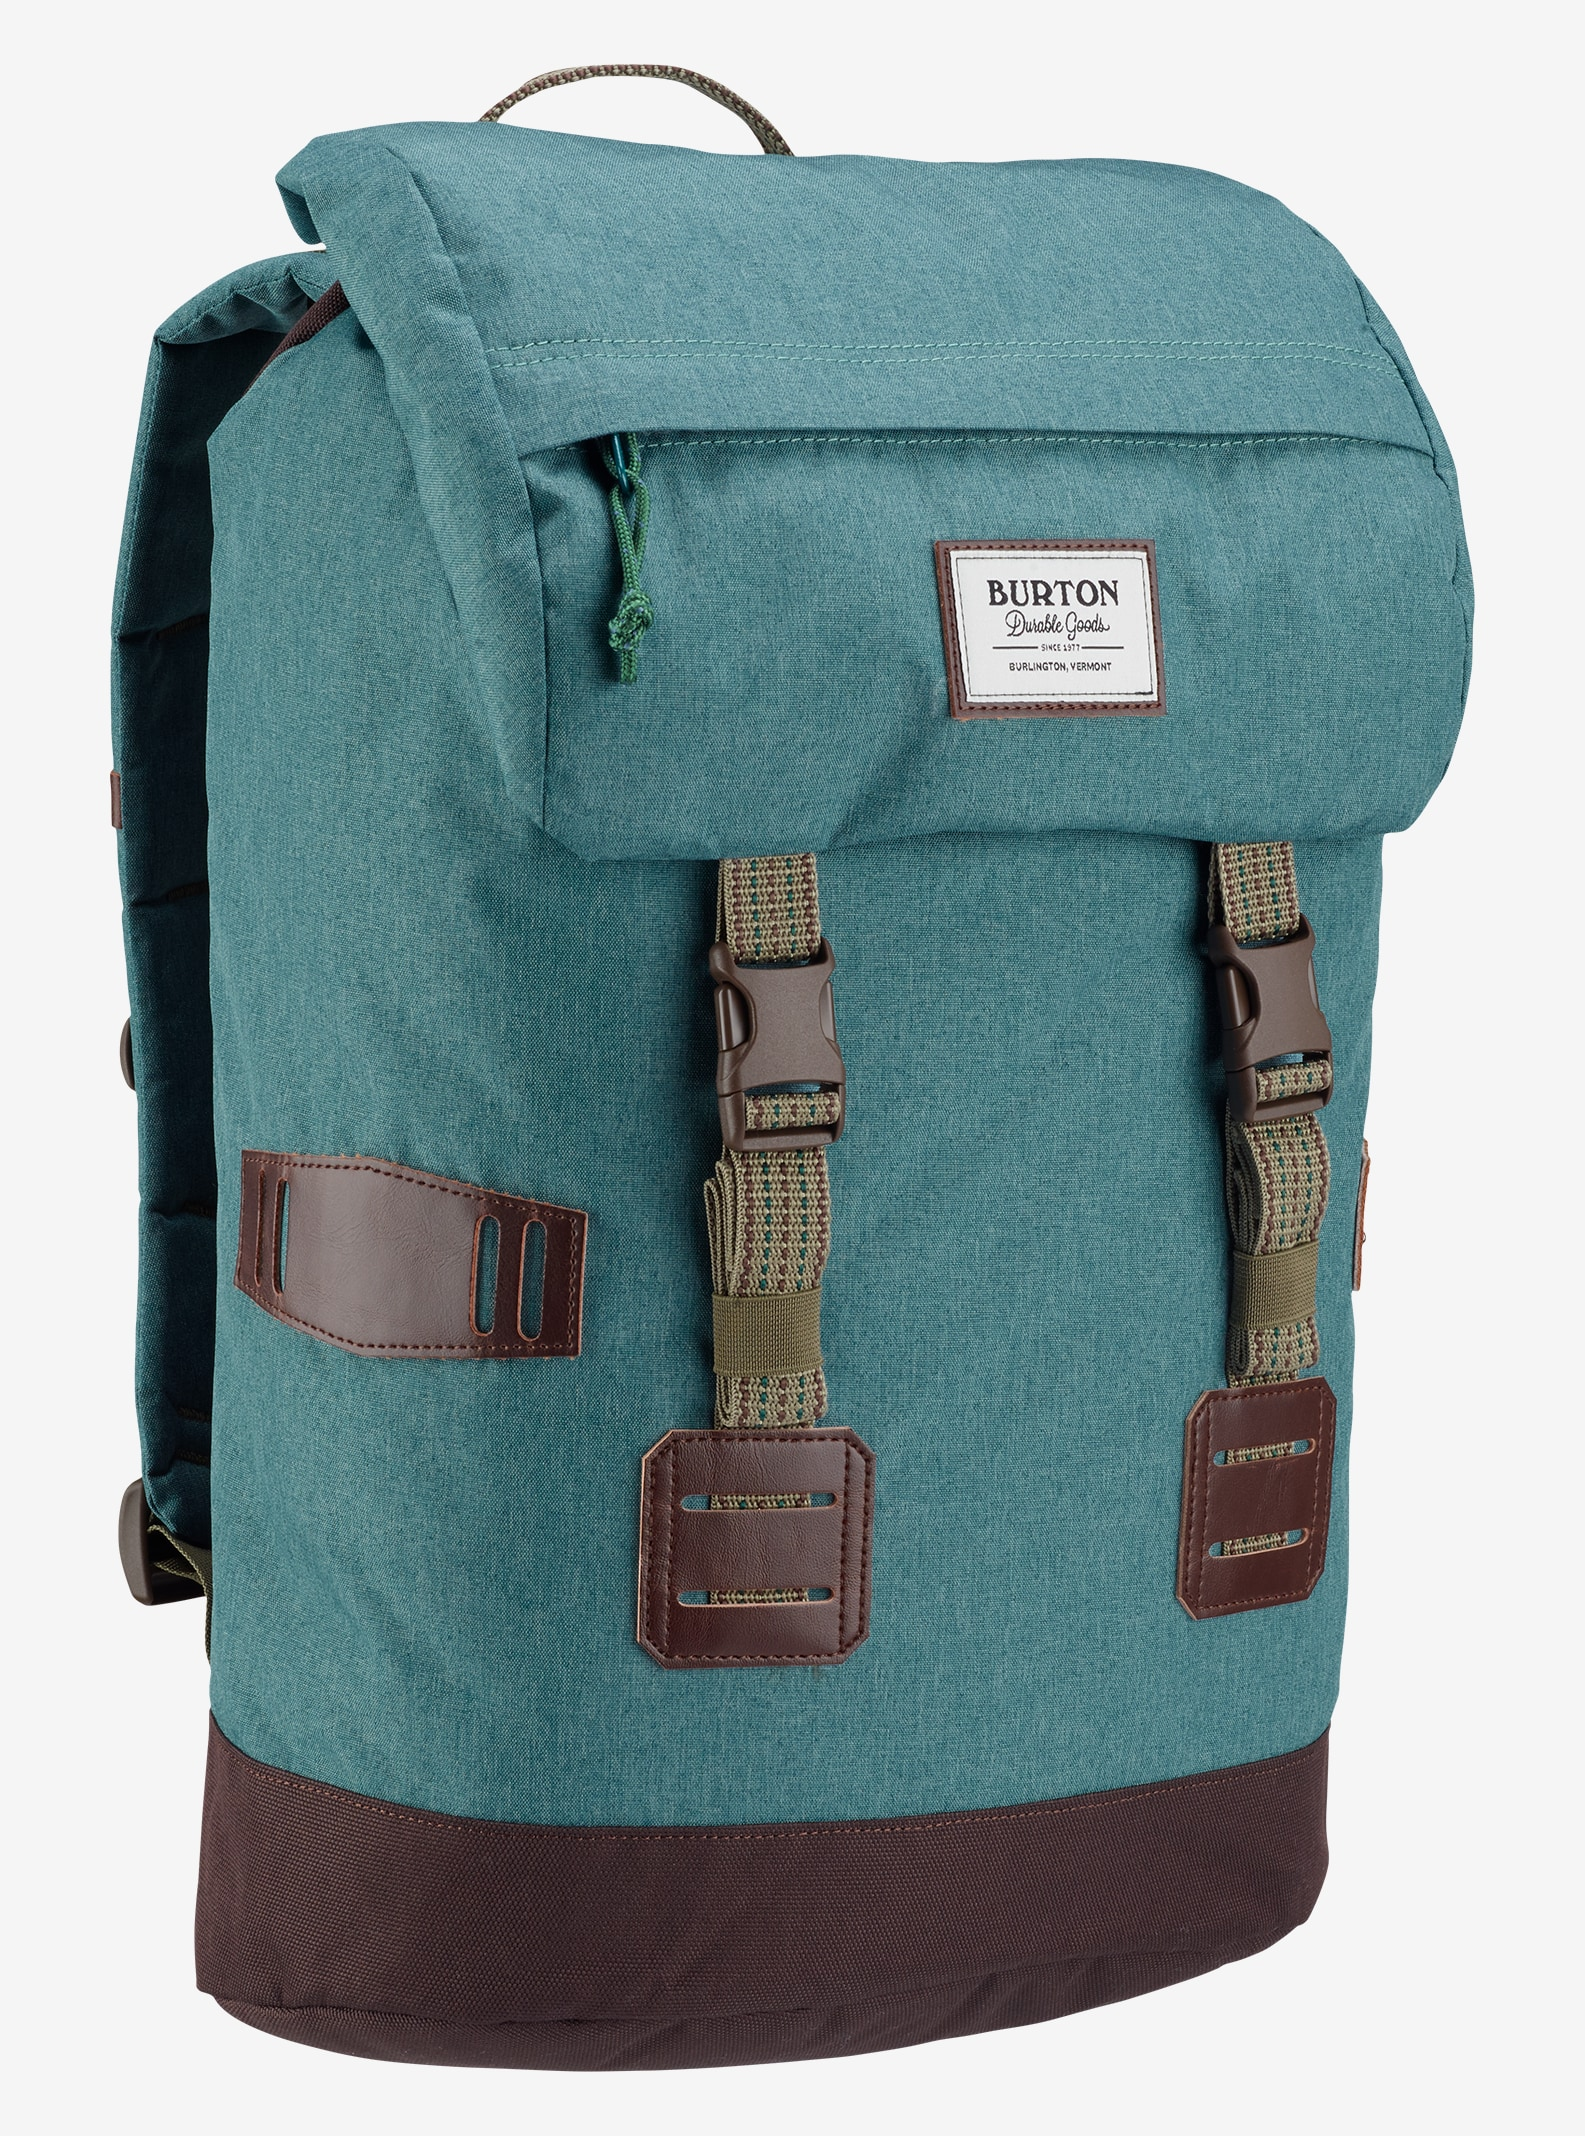 Burton Tinder Backpack shown in Jasper Heather